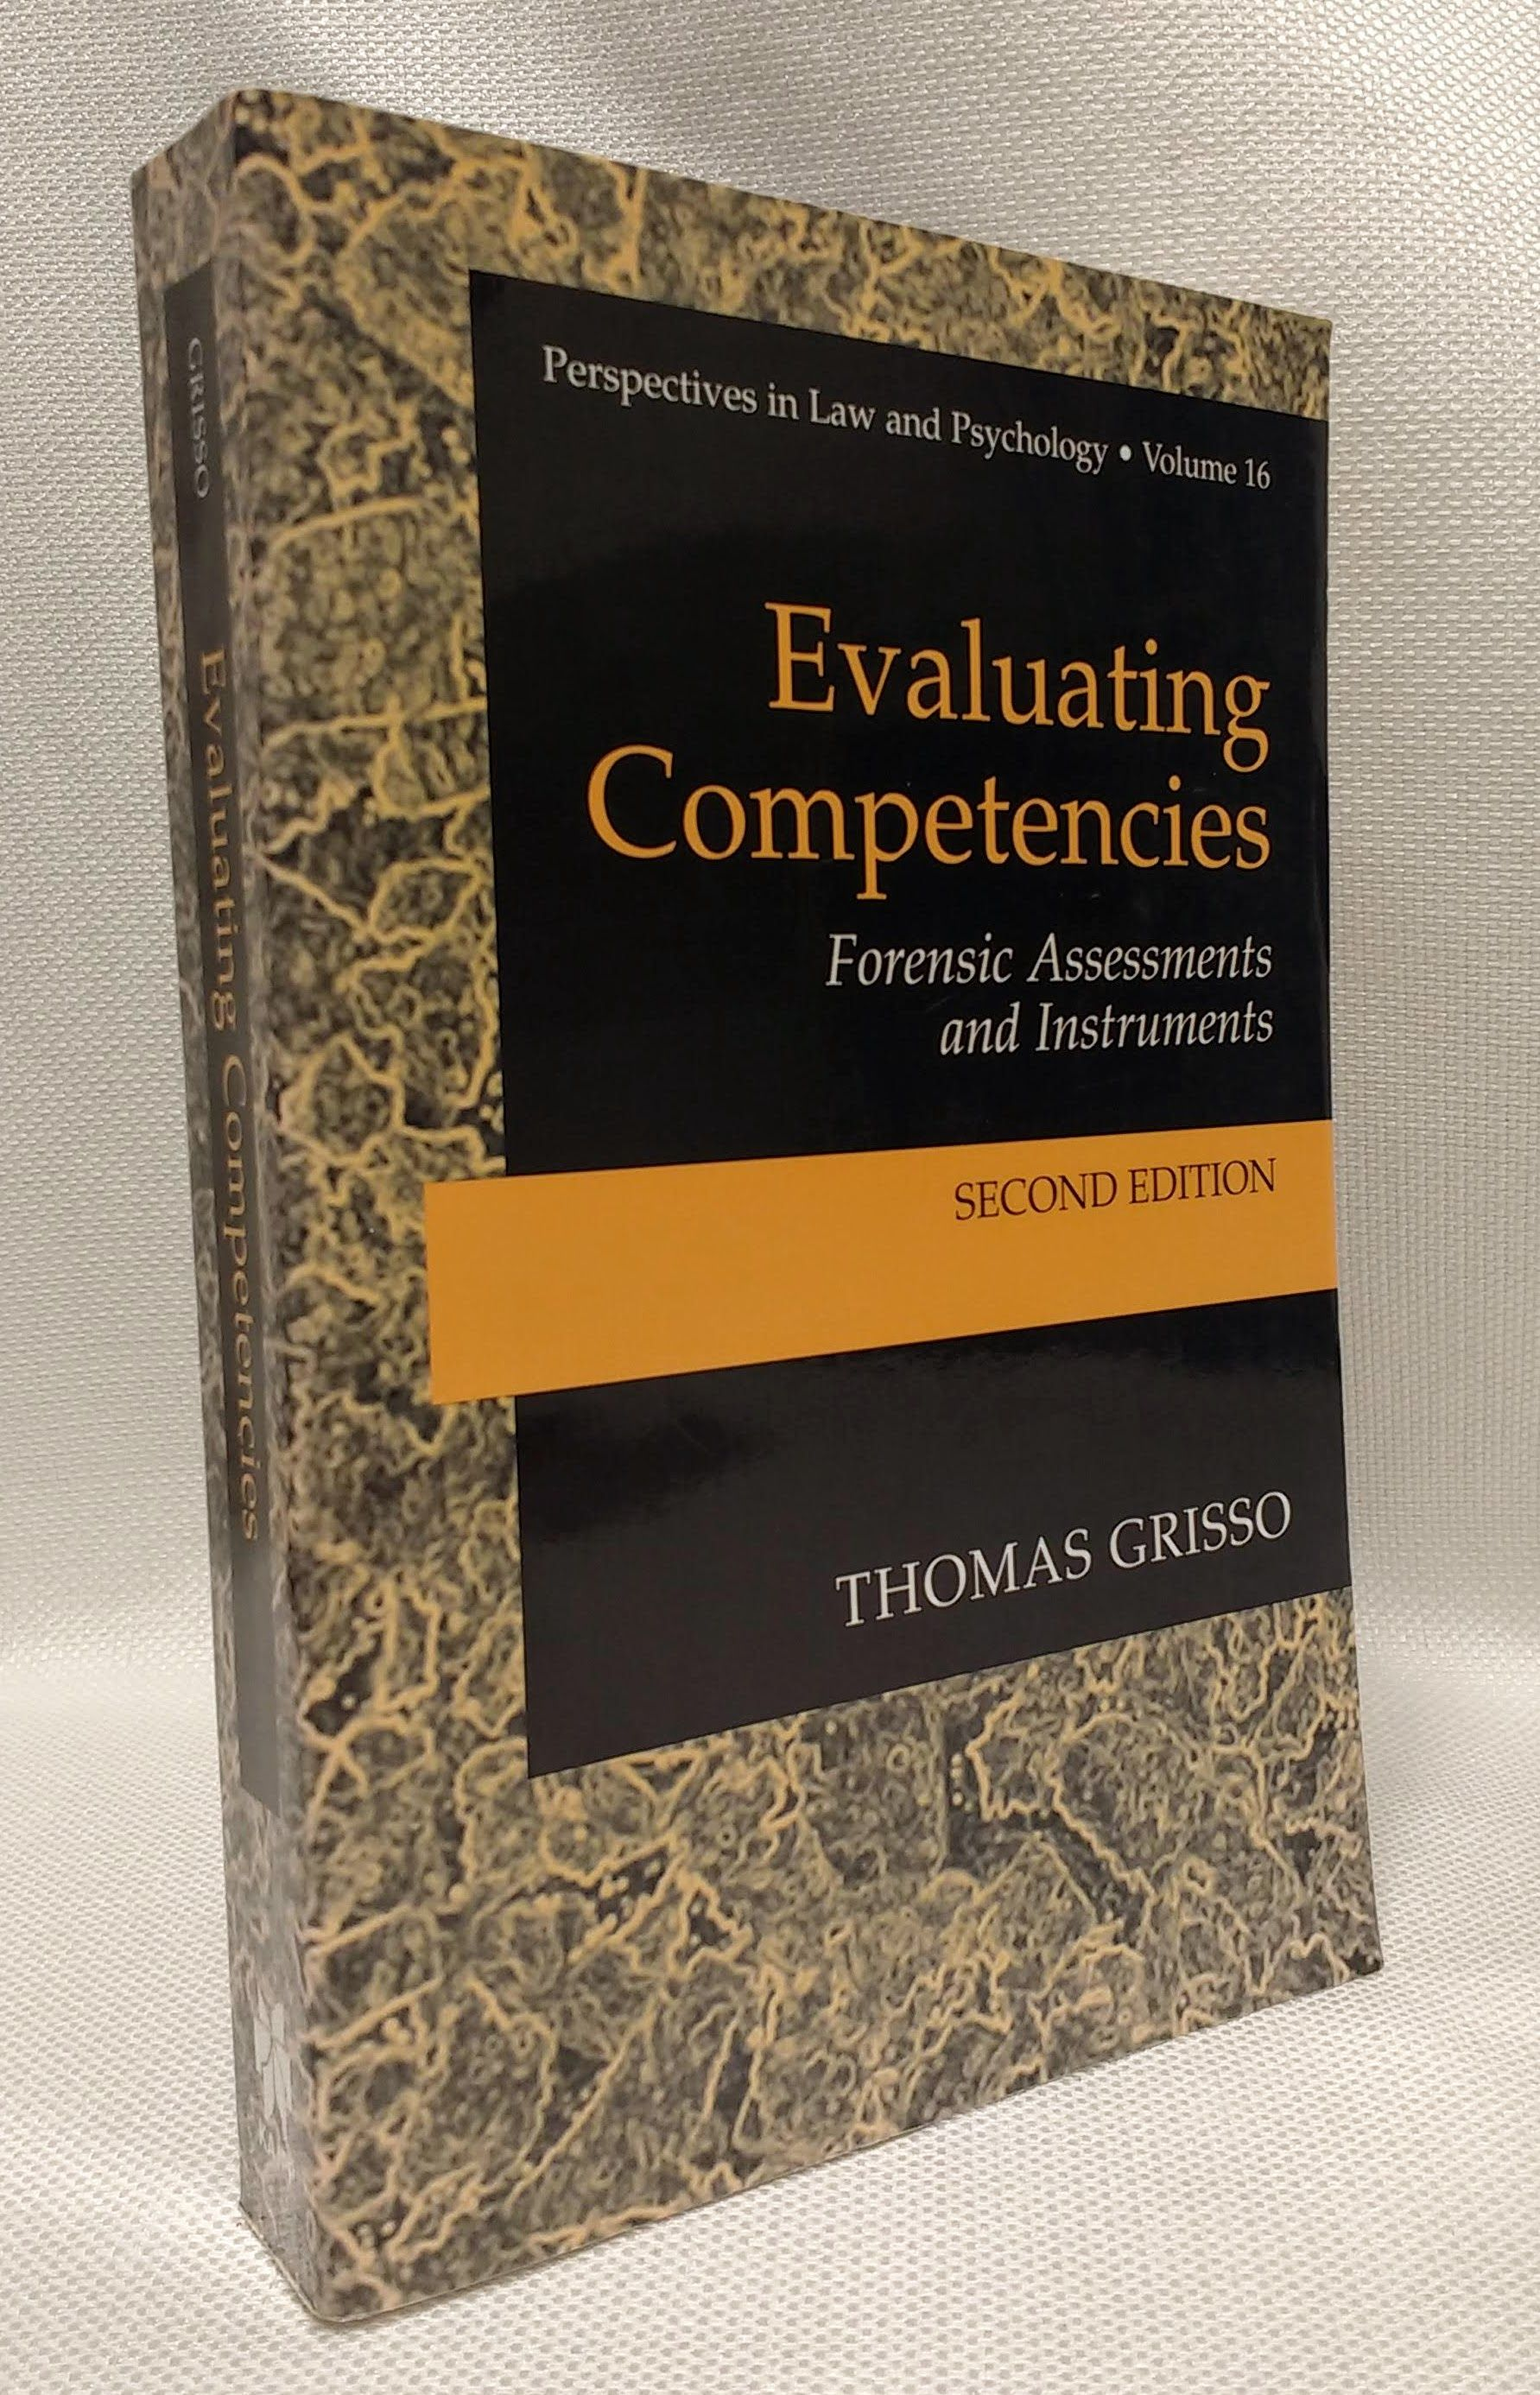 Evaluating Competencies: Forensic Assessments and Instruments (Perspectives in Law & Psychology), Grisso, Thomas